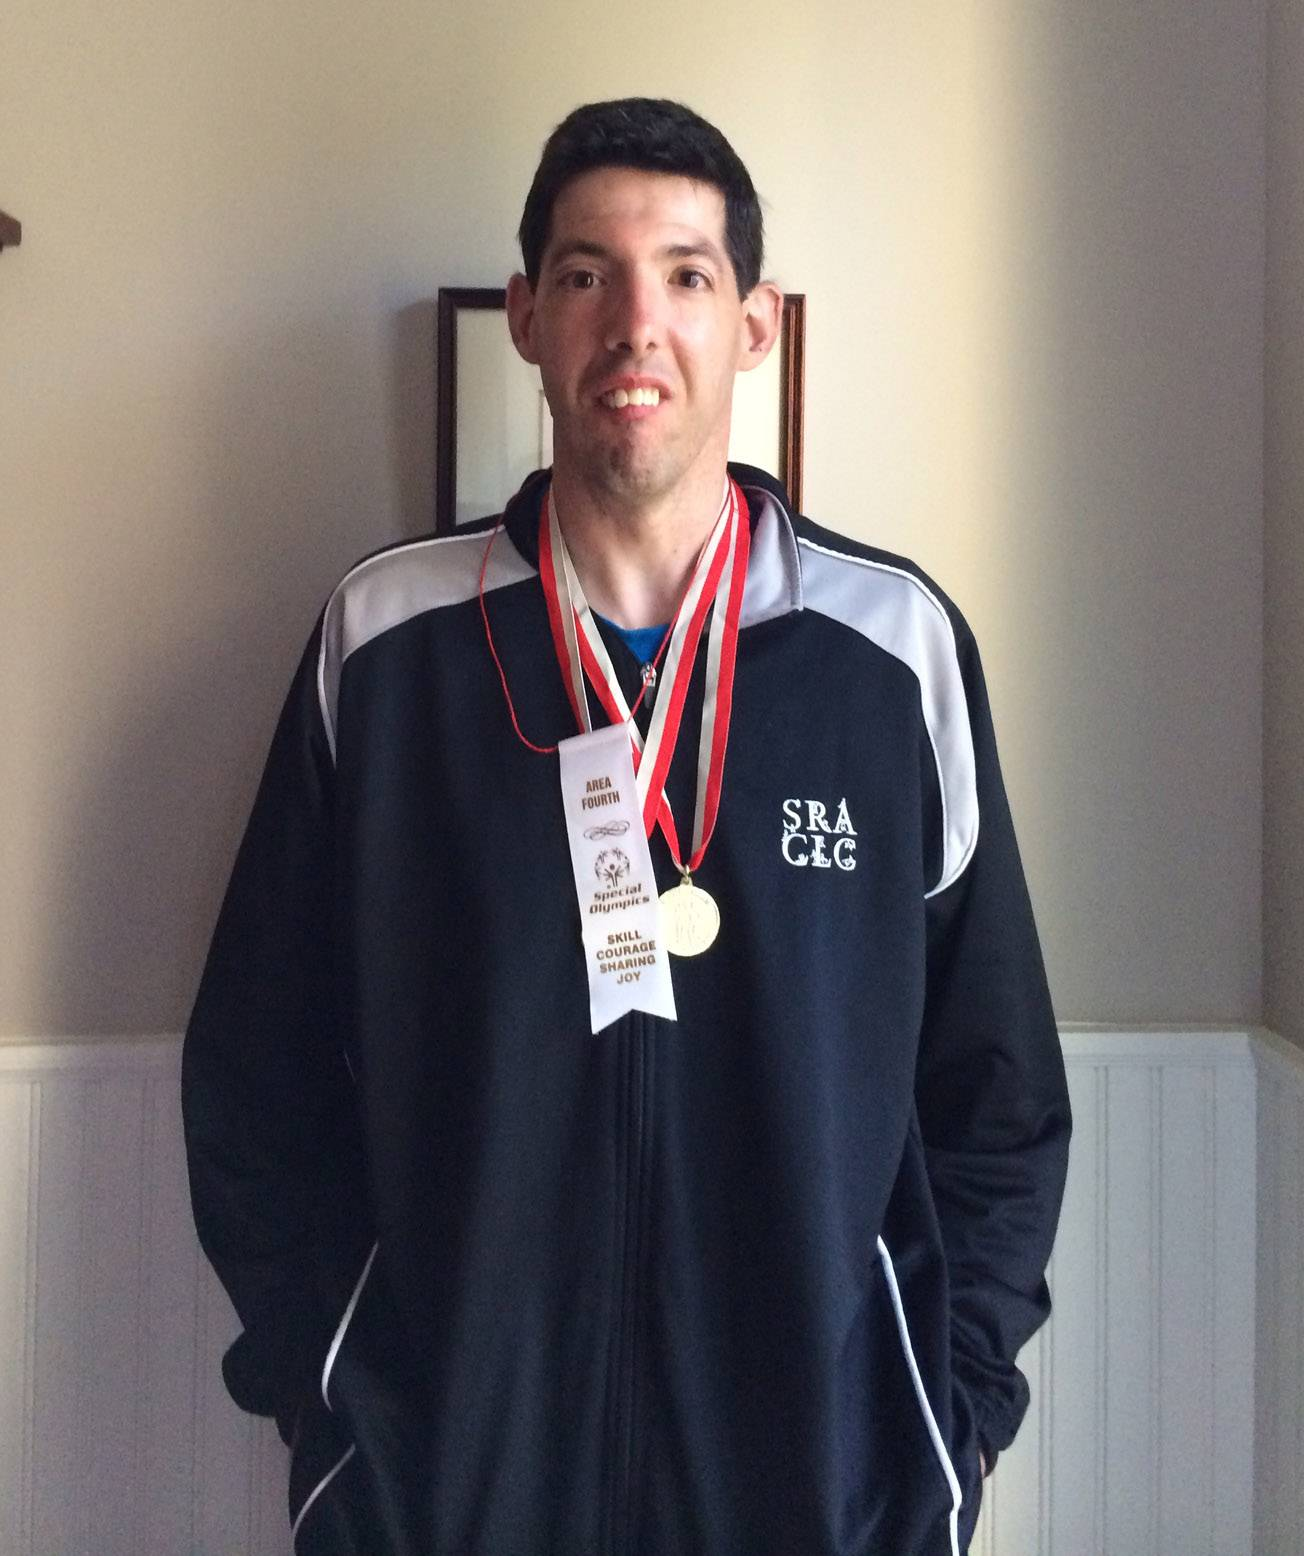 Switch to track and field pays off for Lincolshire Special Olympian